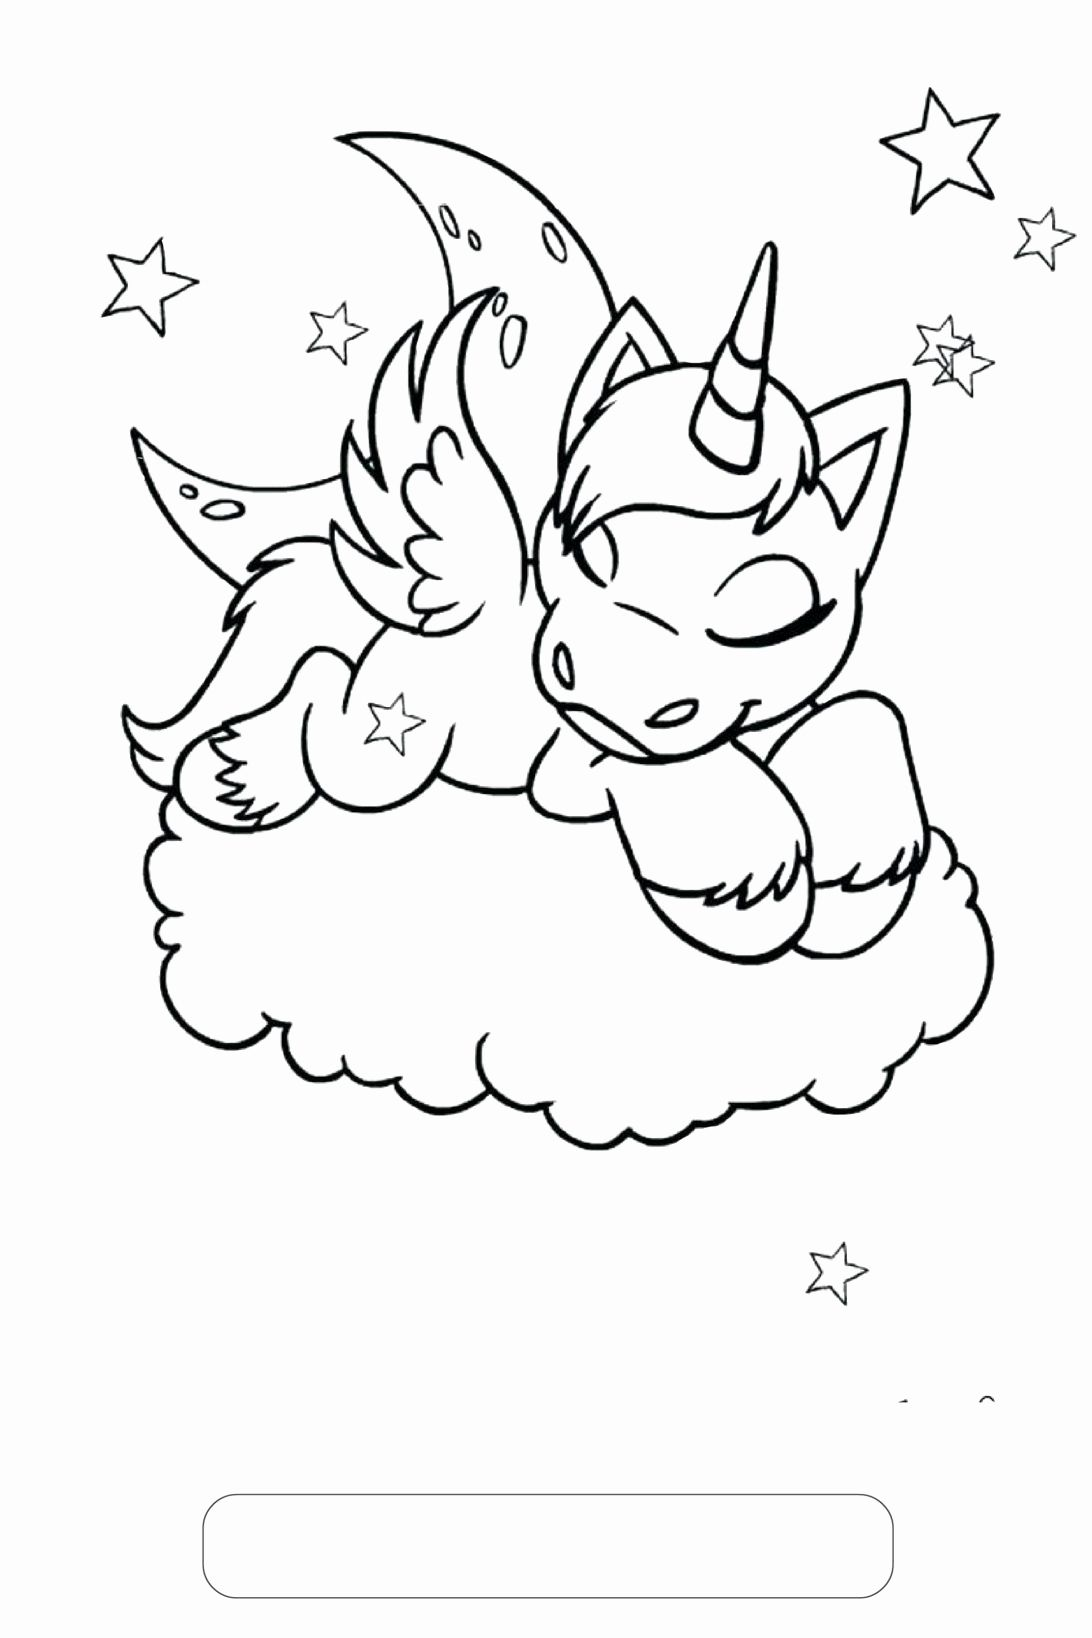 Printable Coloring Pages For Kids Cat Emoji Unicorn Coloring Pages Cat Coloring Page Fairy Coloring Pages